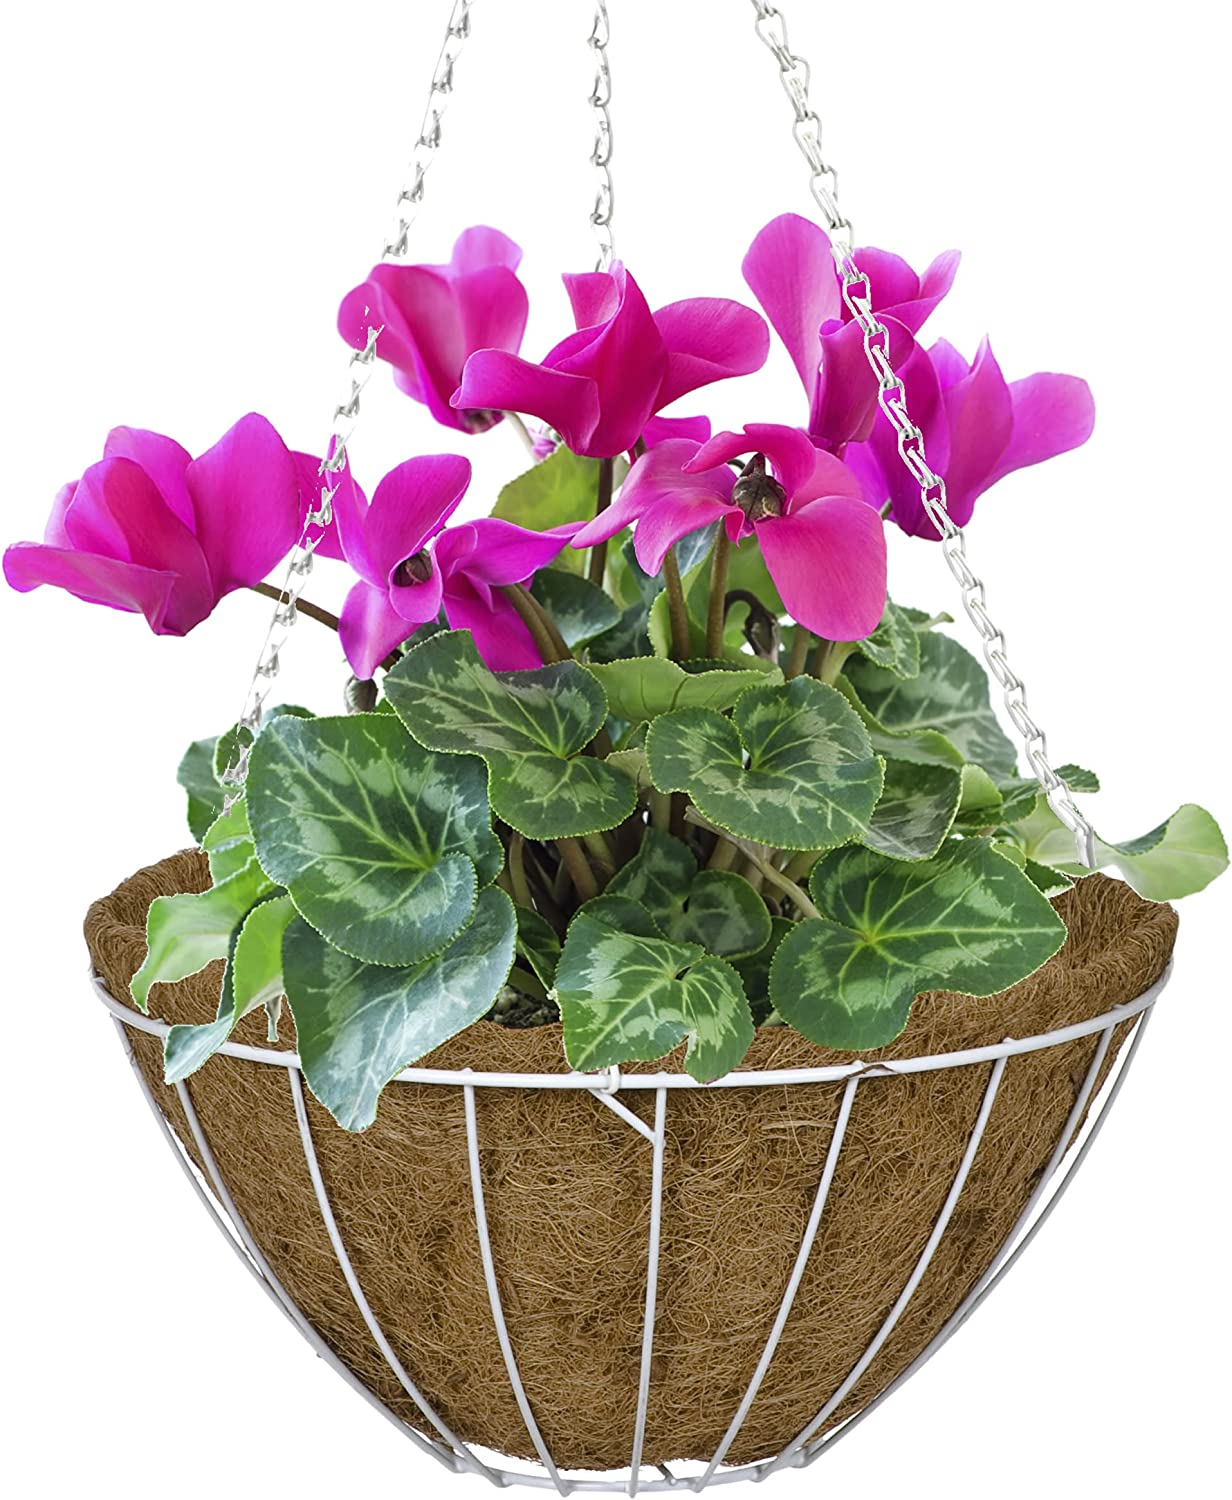 CobraCo White 12-Inch Growers Style Hanging Basket HGB12-W